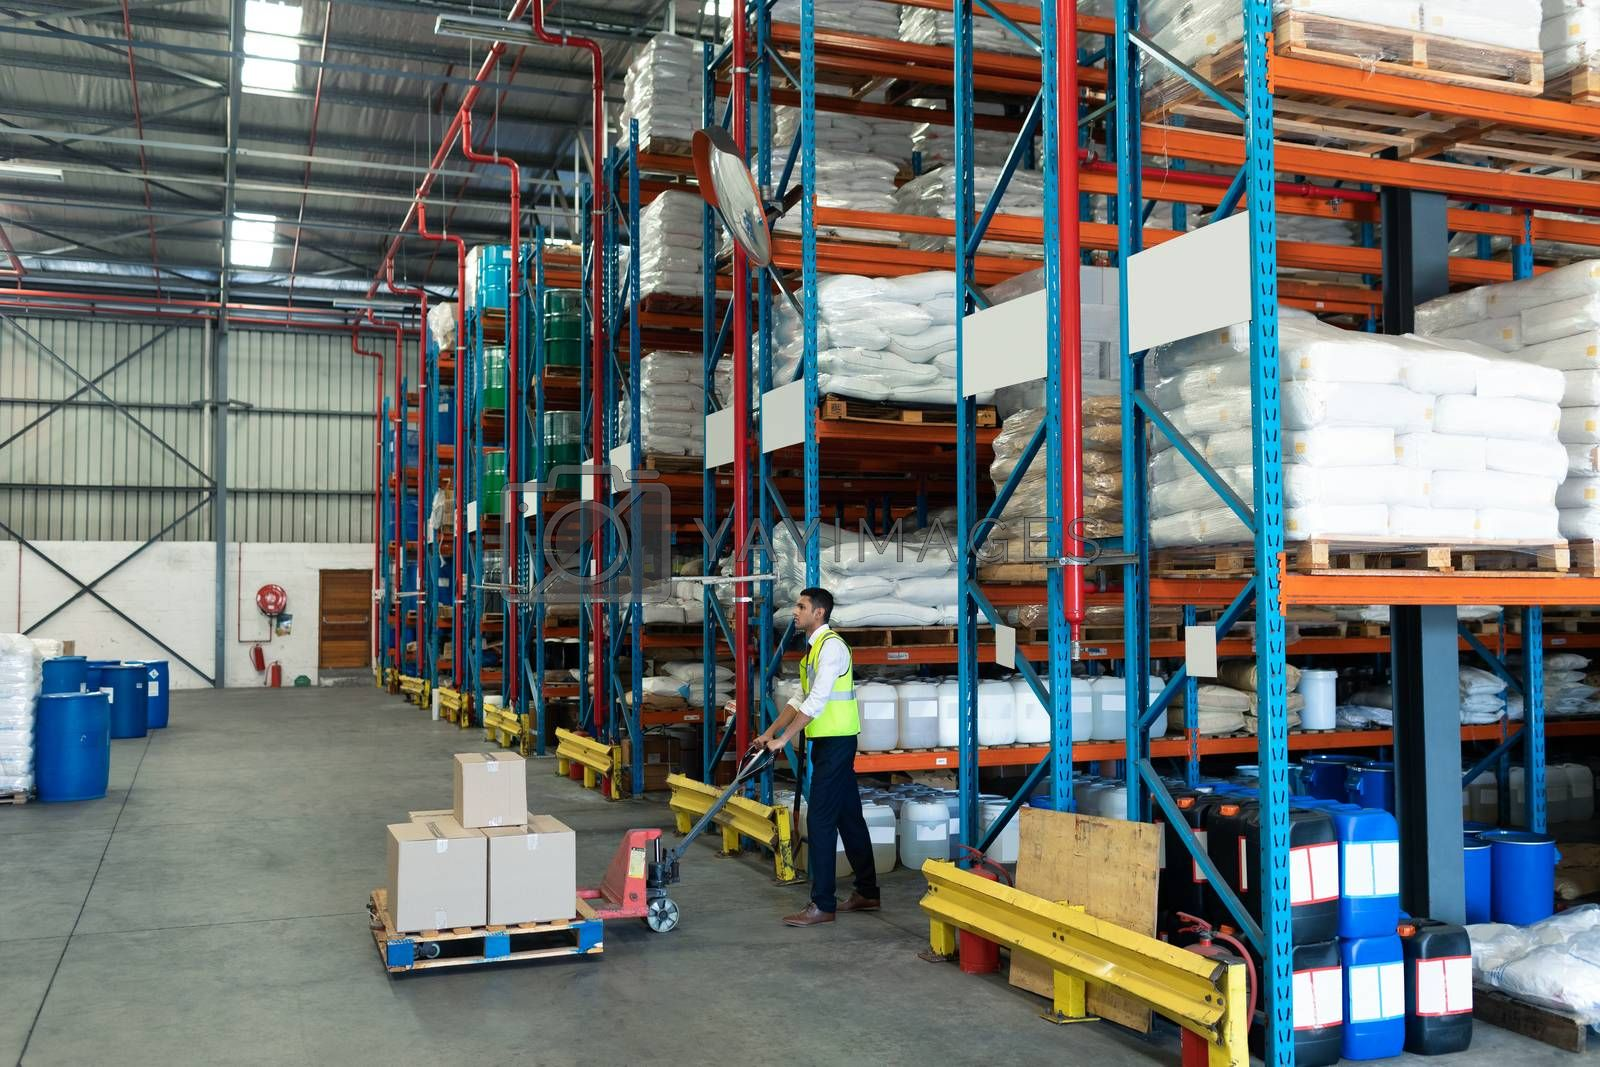 Side view of Young Caucasian male staff using pallet jack in warehouse. This is a freight transportation and distribution warehouse. Industrial and industrial workers concept